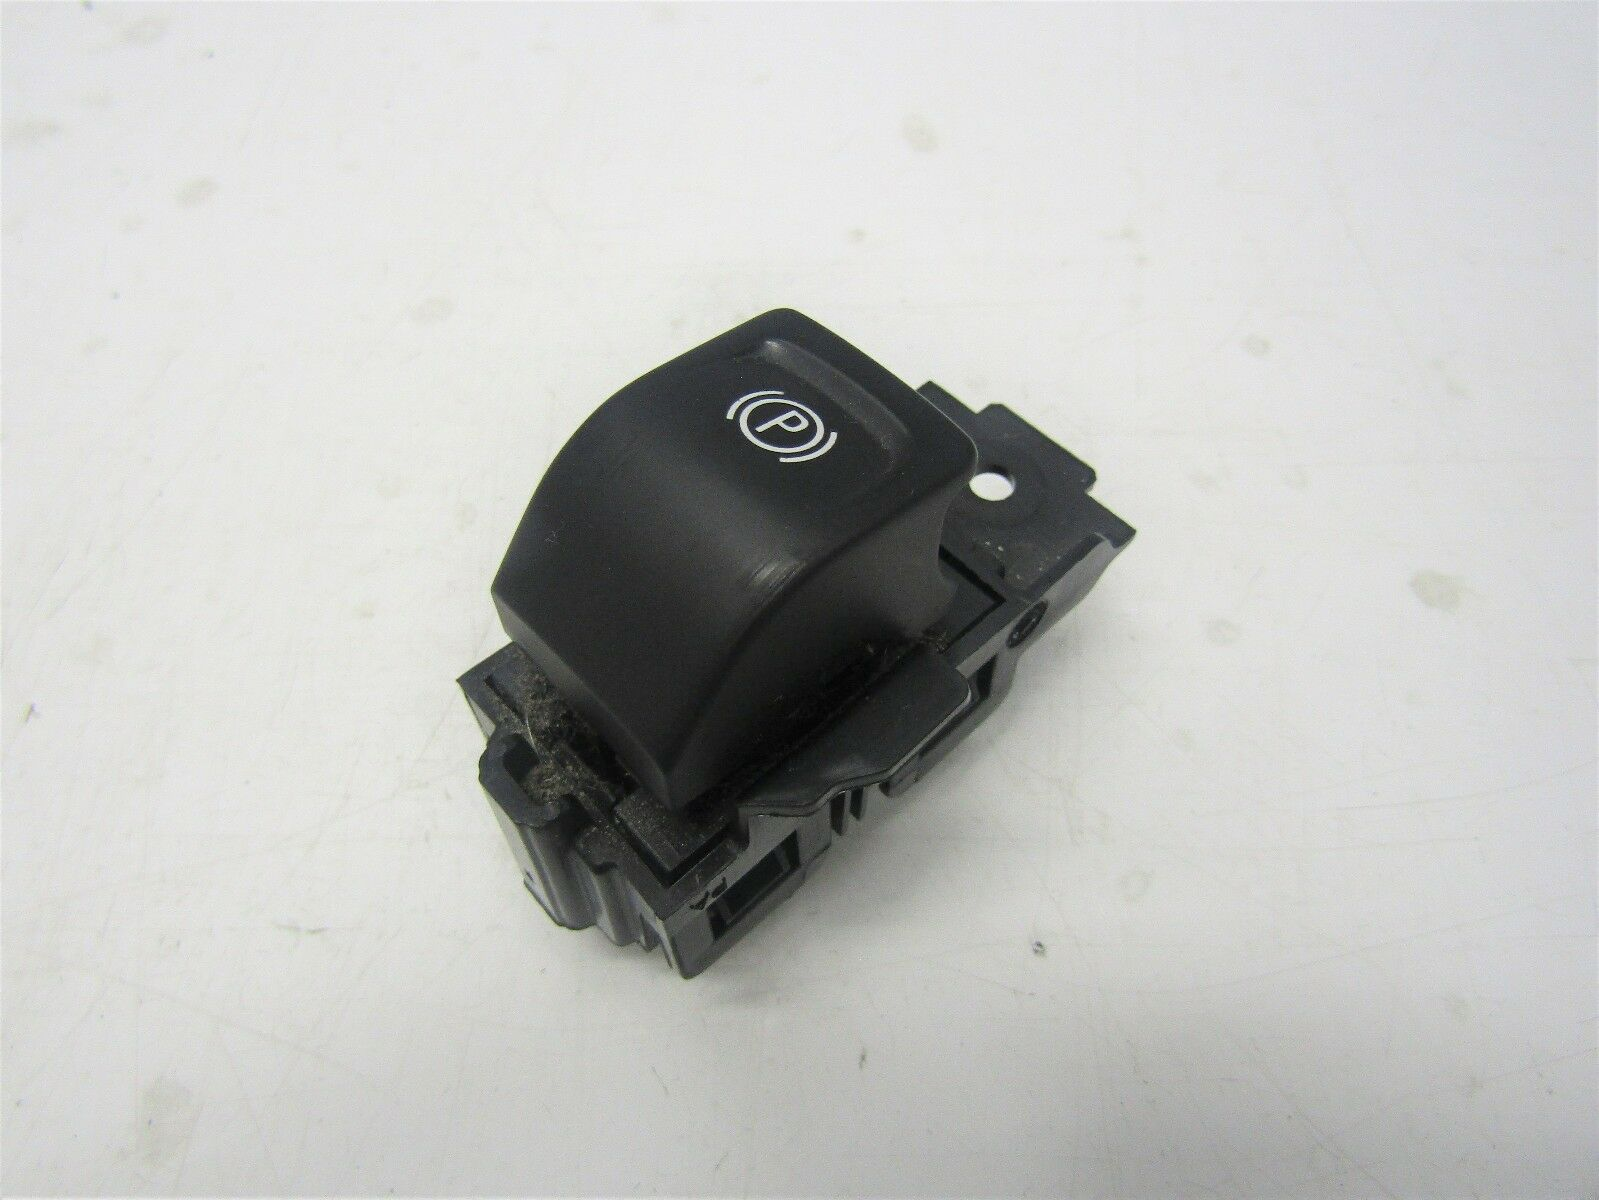 VAUXHALL INSIGNIA 2009-13 PARKING BRAKE SWITCH 13271123                    #6505